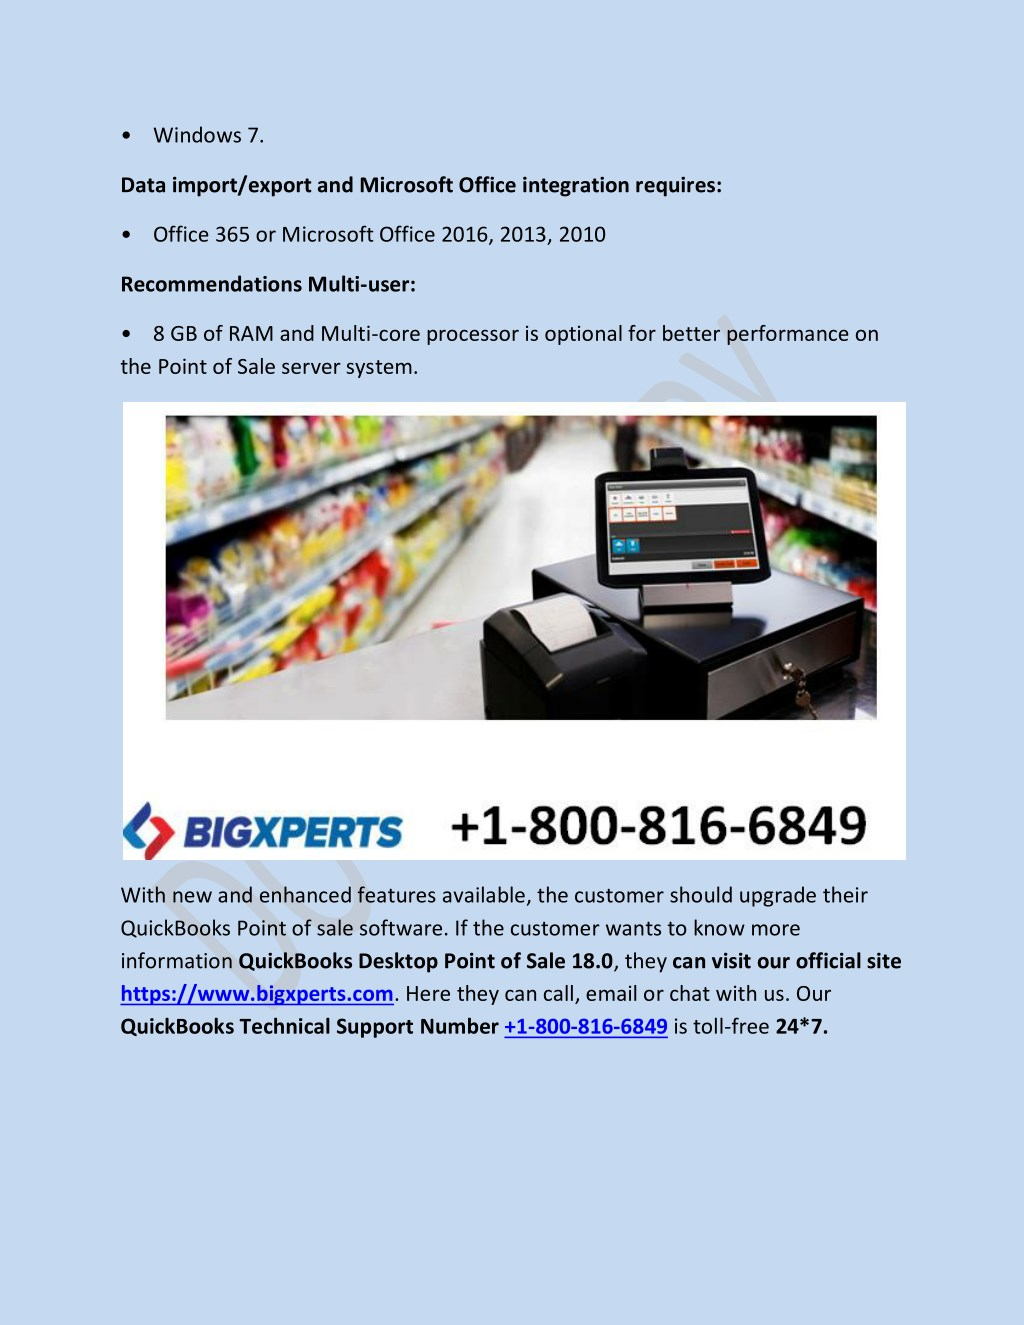 PPT - QuickBooks Desktop Point of Sale 18 0 Terms of Service